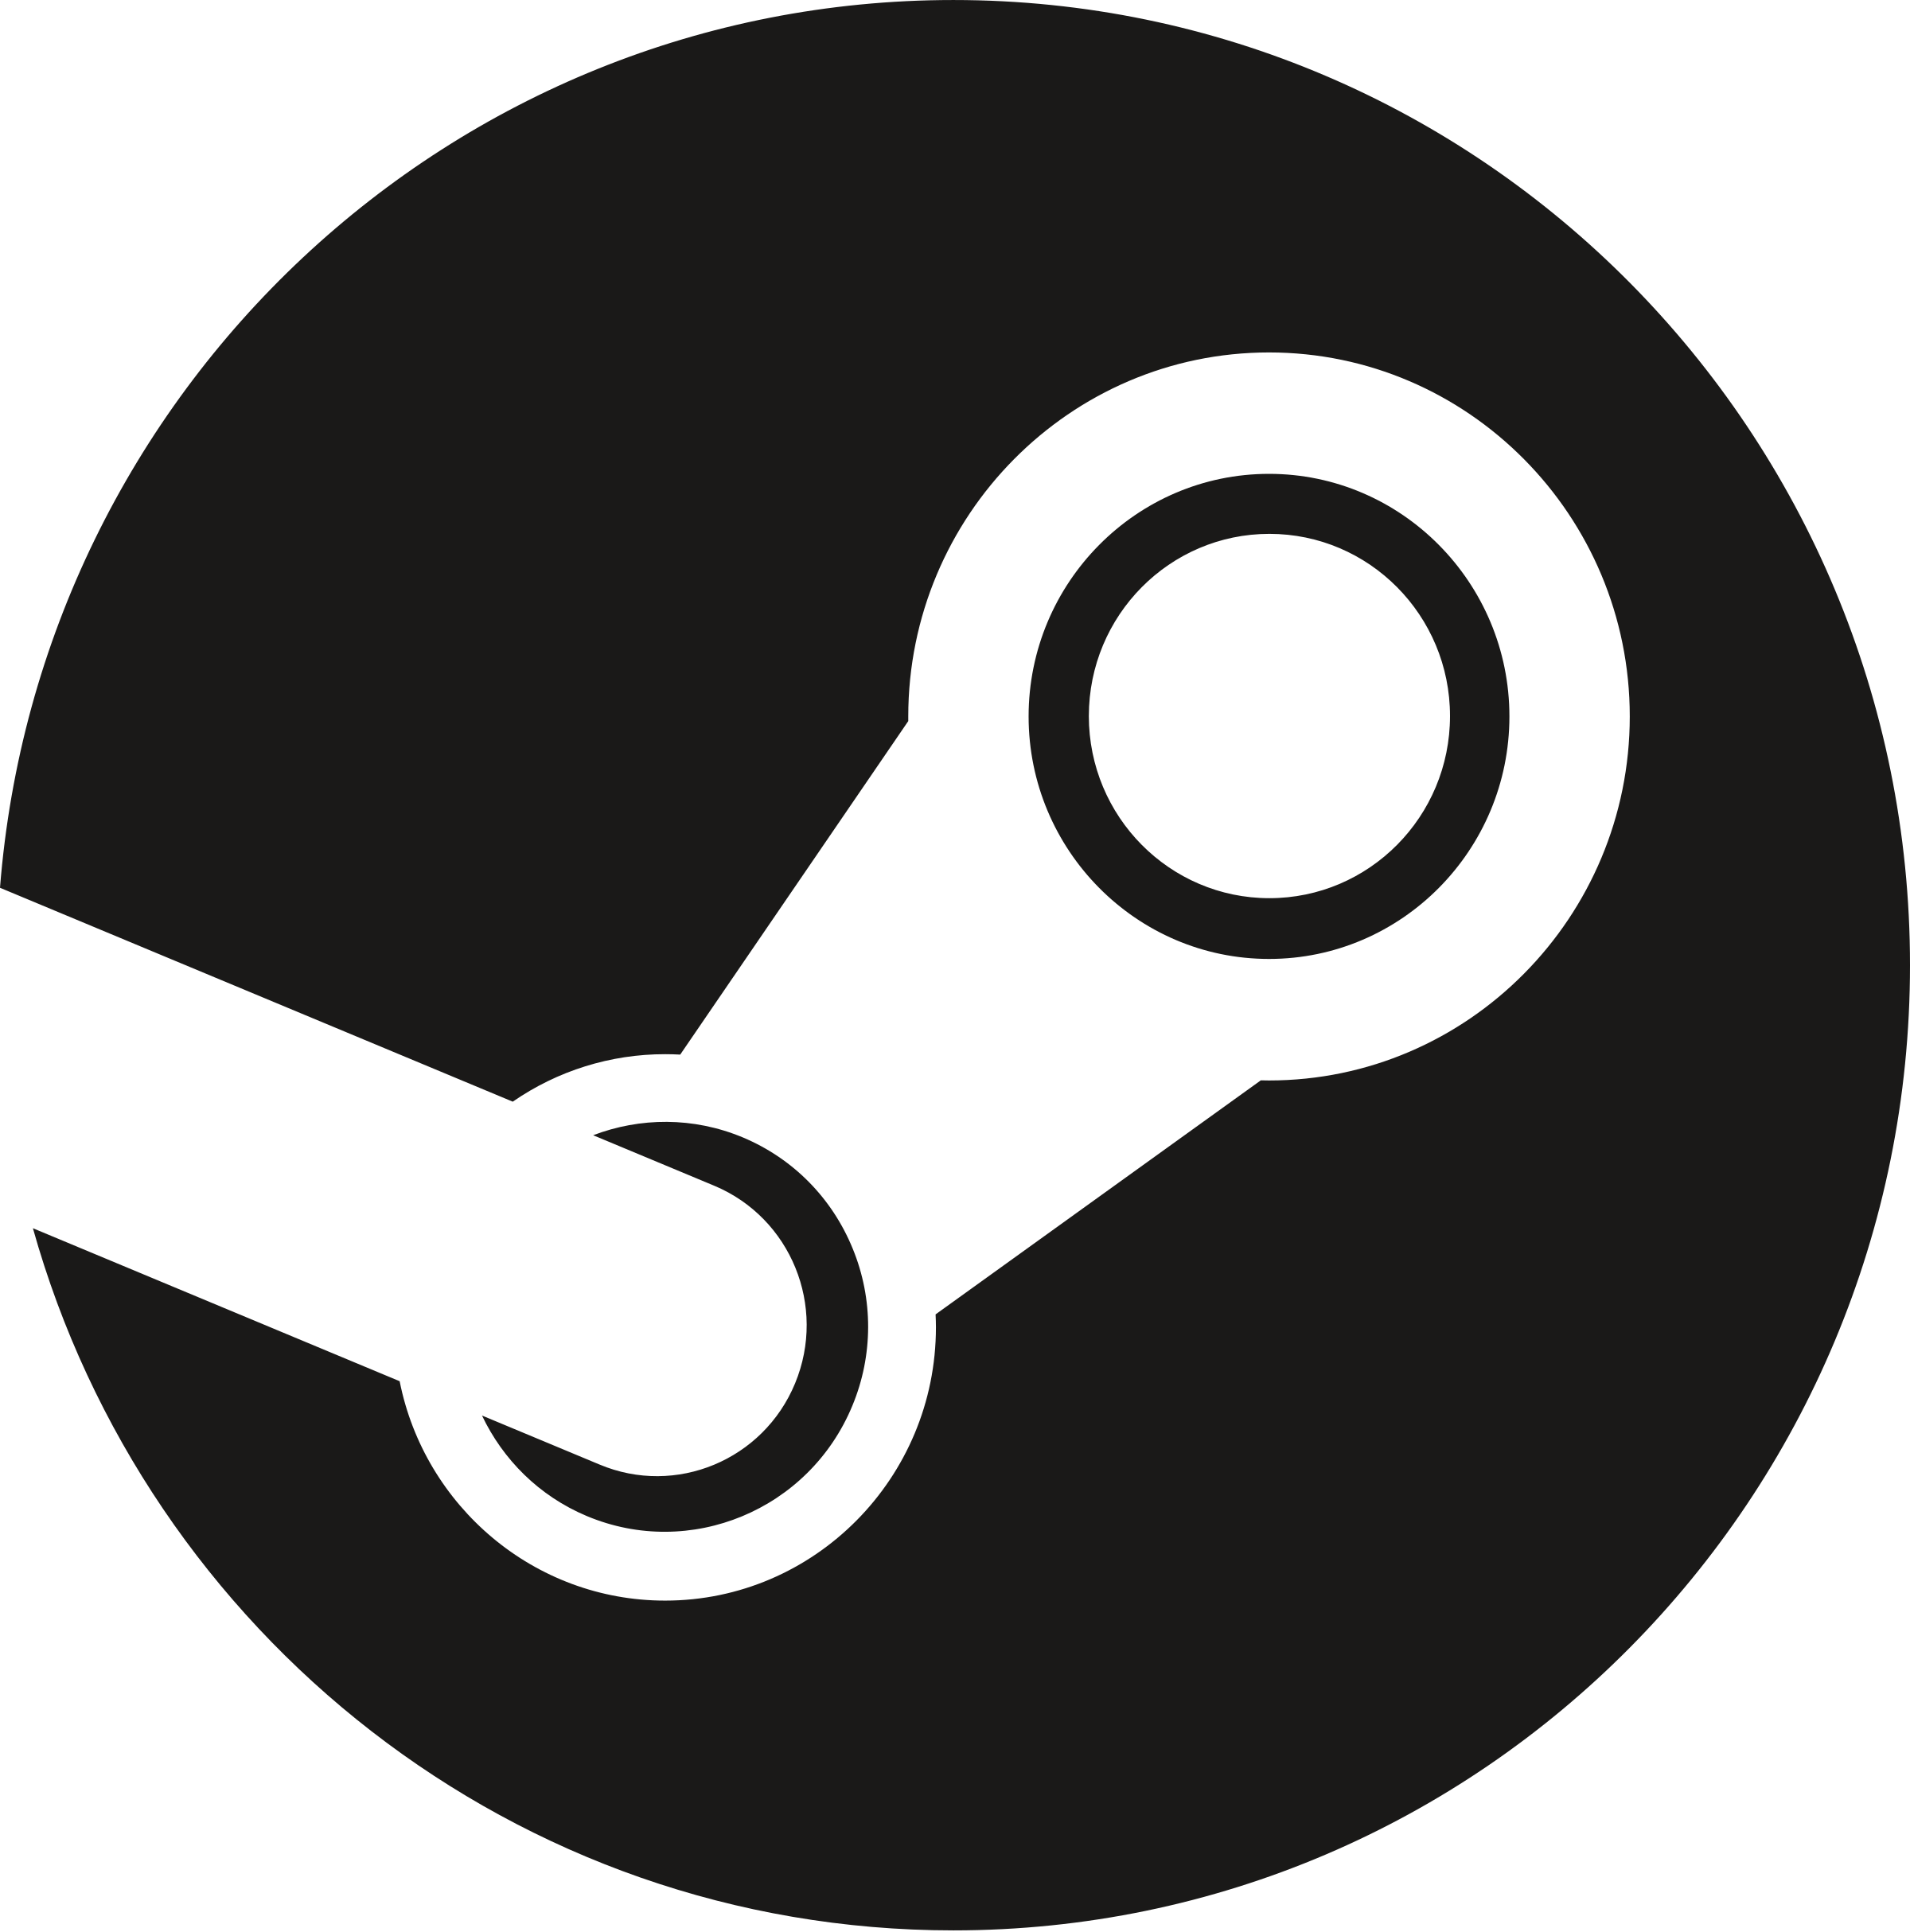 Download Steam Logo Png Transparent Ebay Steam Gift Card 20 Gbp Cd Key Uk Png Image With No Background Pngkey Com